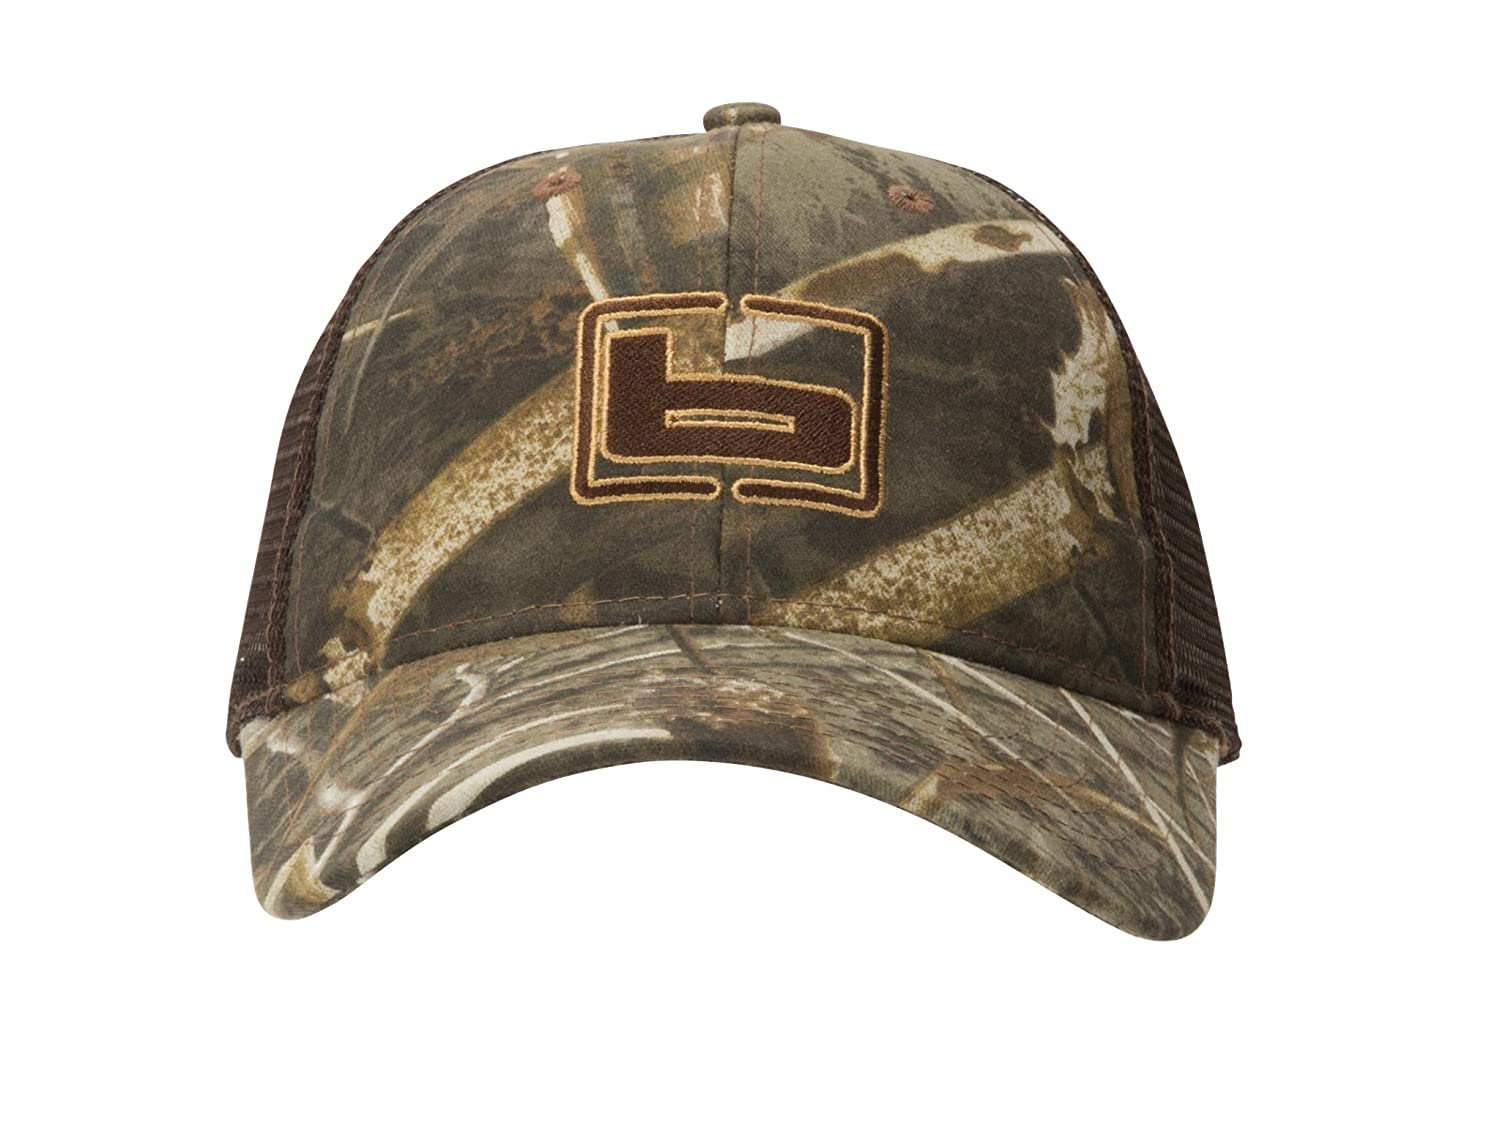 cd77132665ae0 Amazon.com : Banded Trucker Cap - Bottomland : Sports & Outdoors